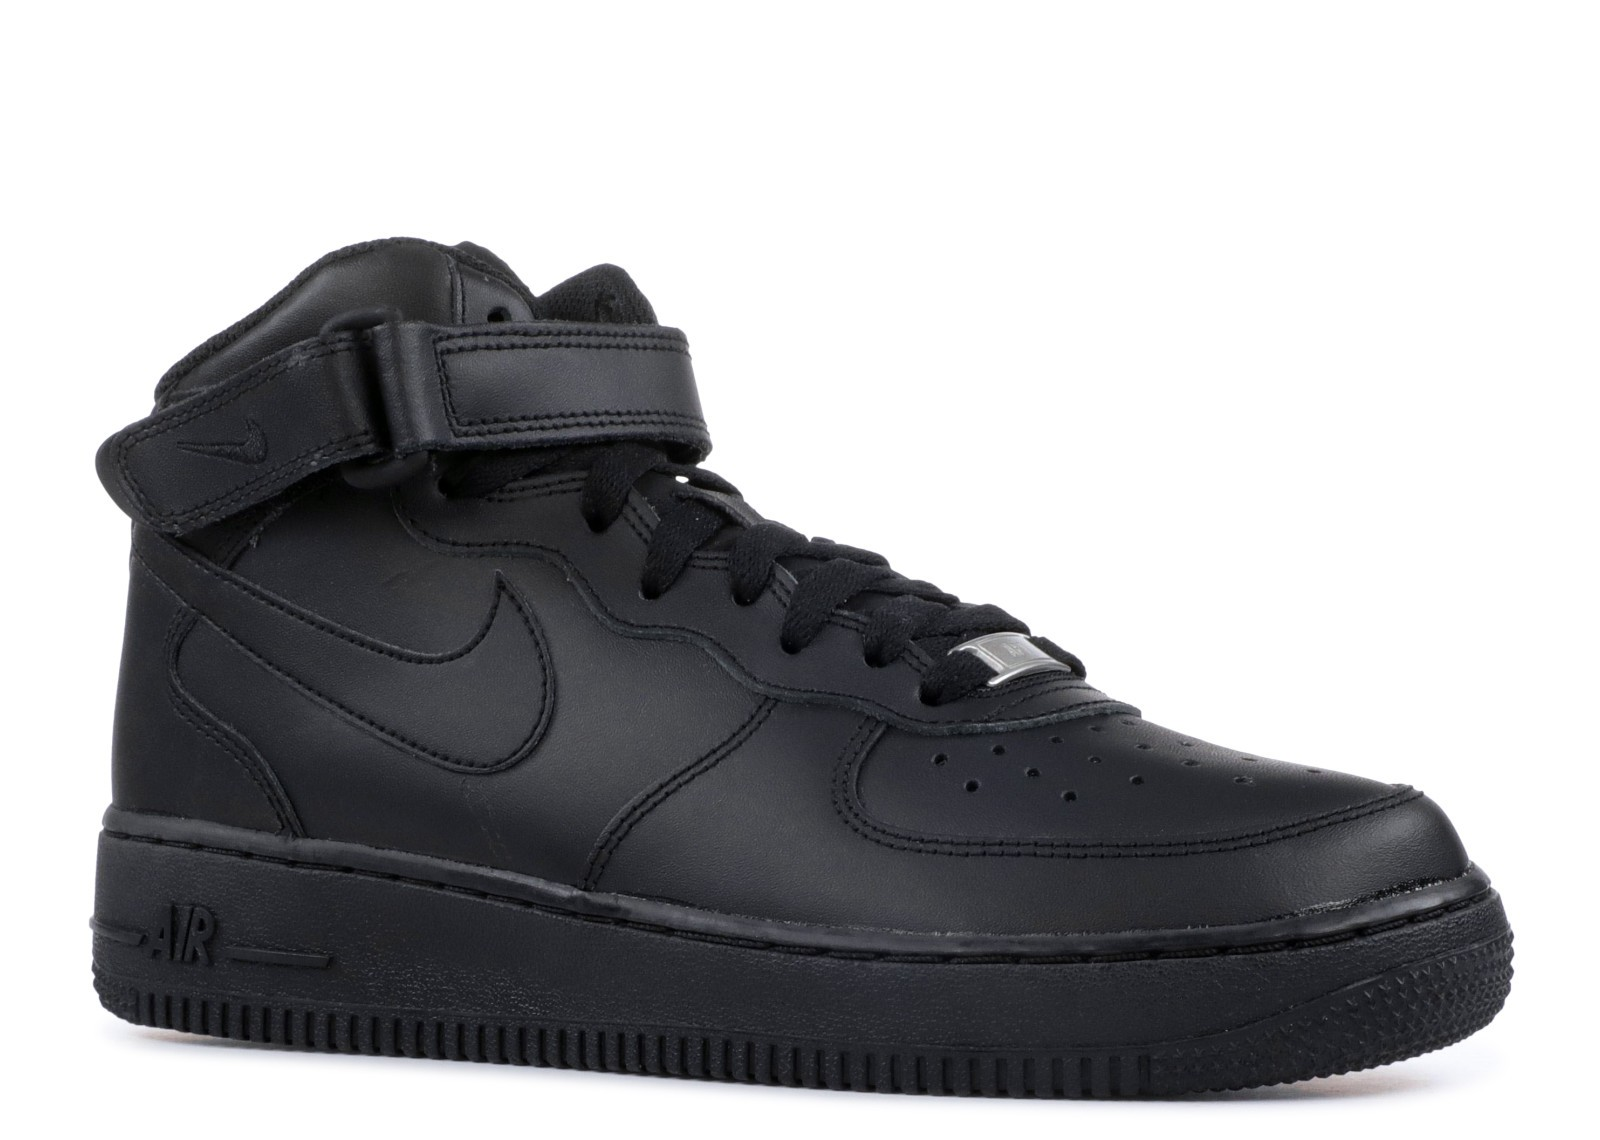 Nike Air Force 1 Mid GS Big Kids Sneakers Black 314195 004